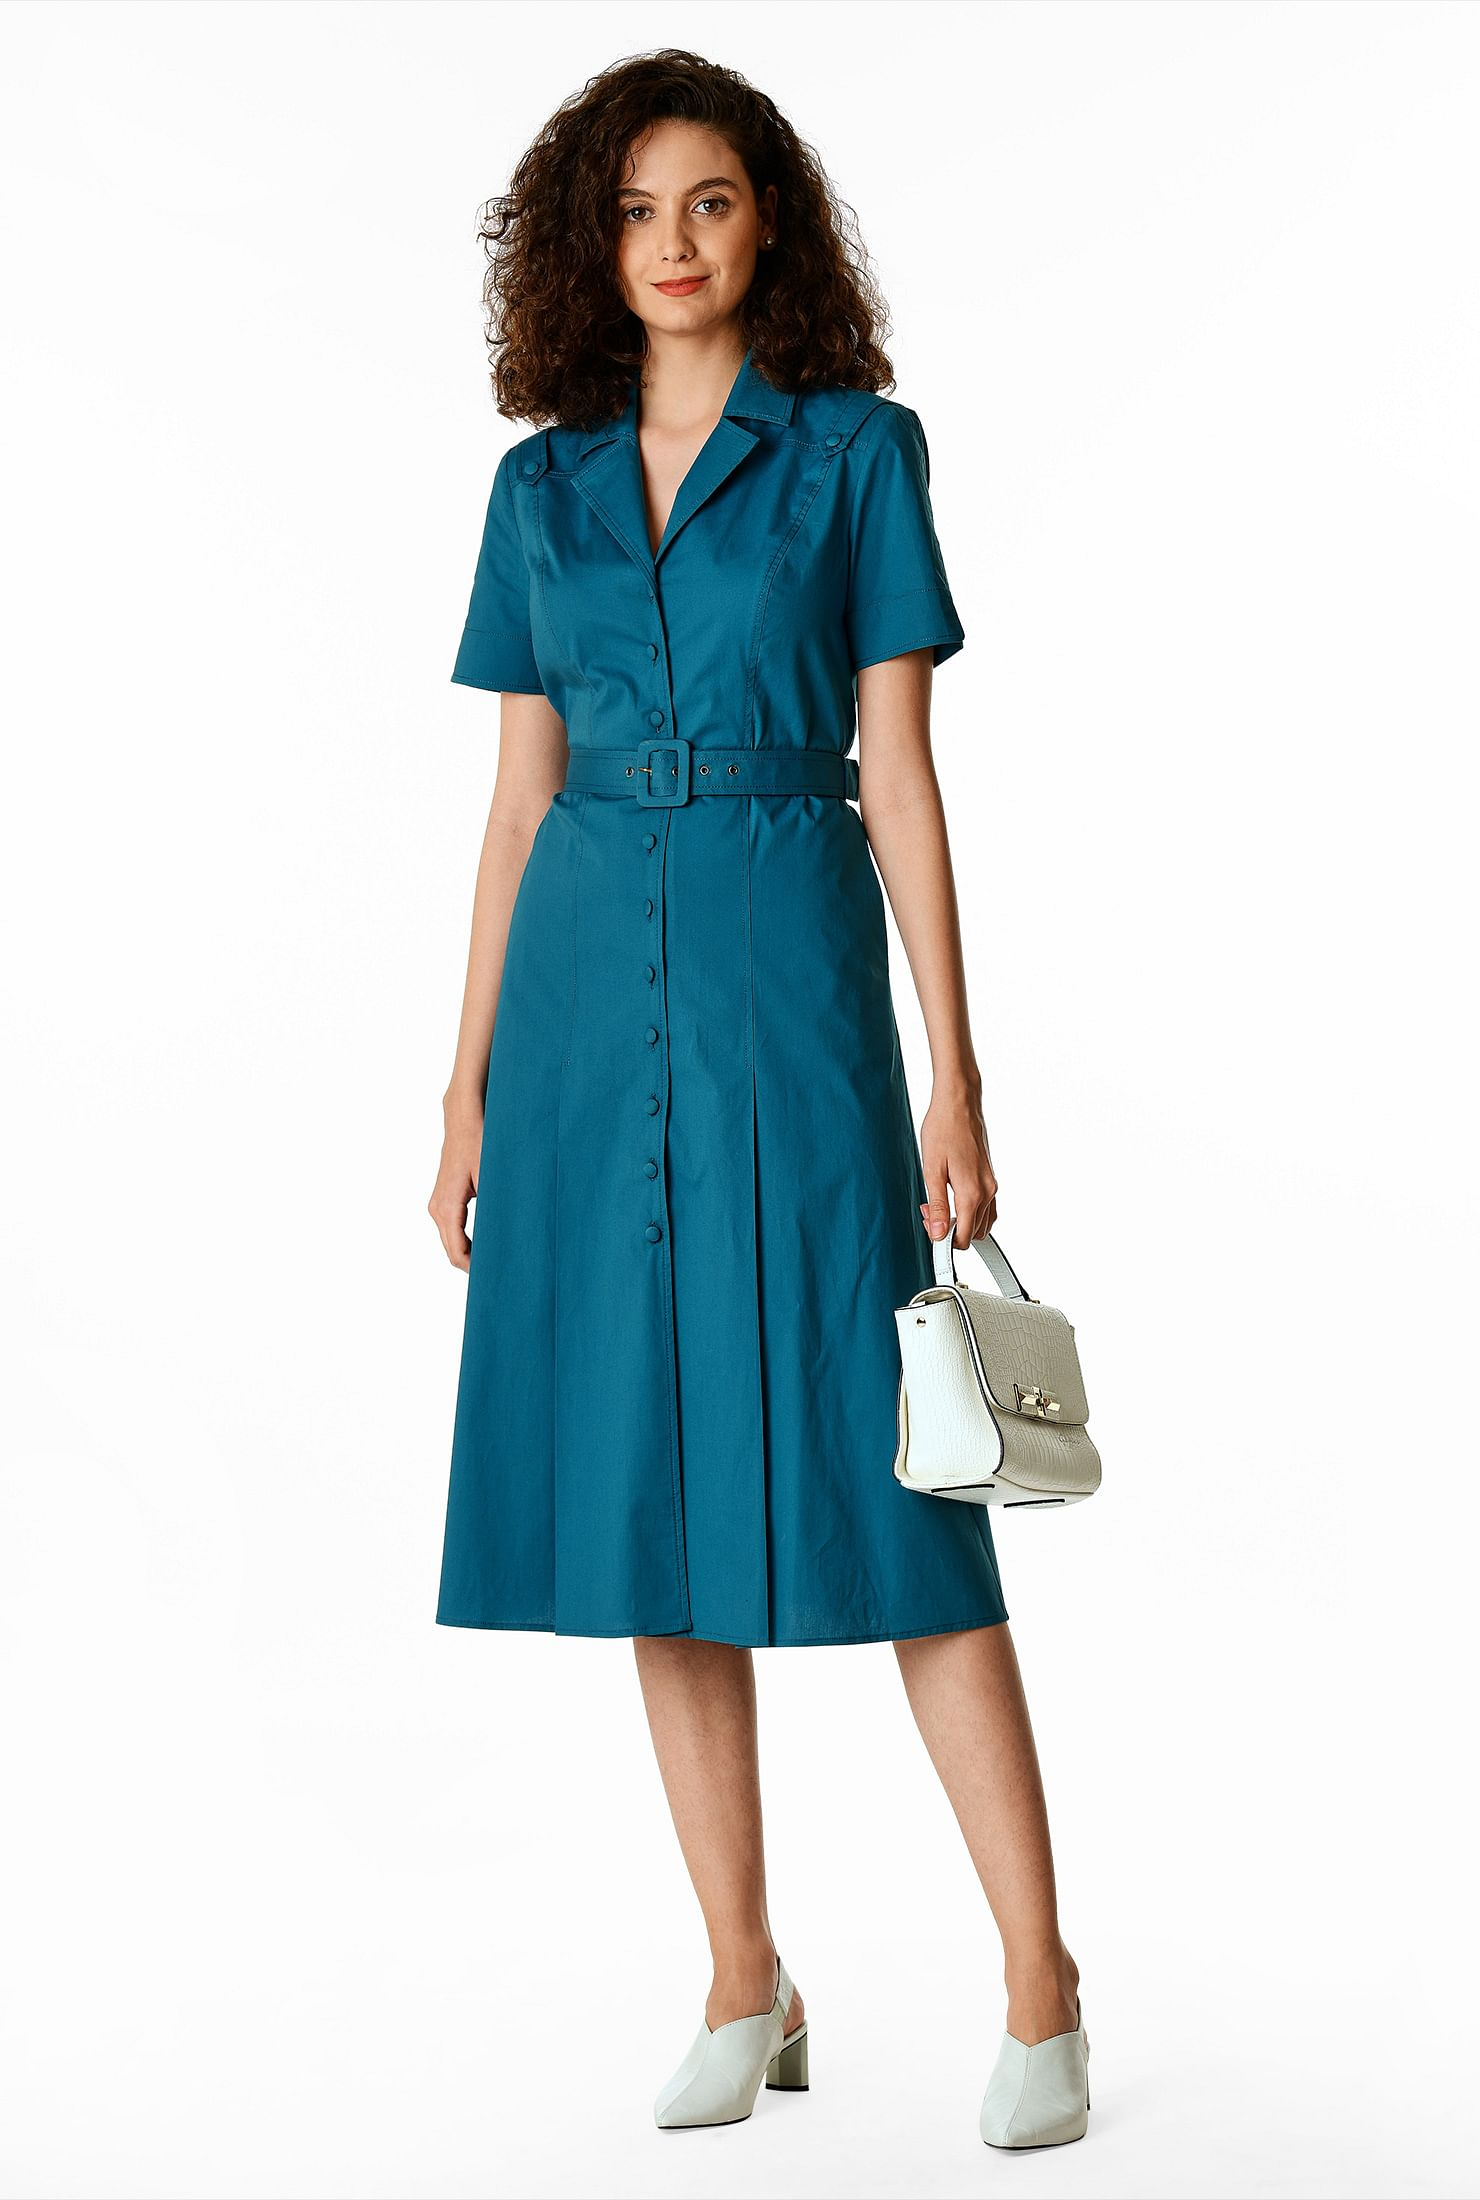 1930s Day Dresses, Afternoon Dresses History Cotton poplin belted shirtdress $59.99 AT vintagedancer.com